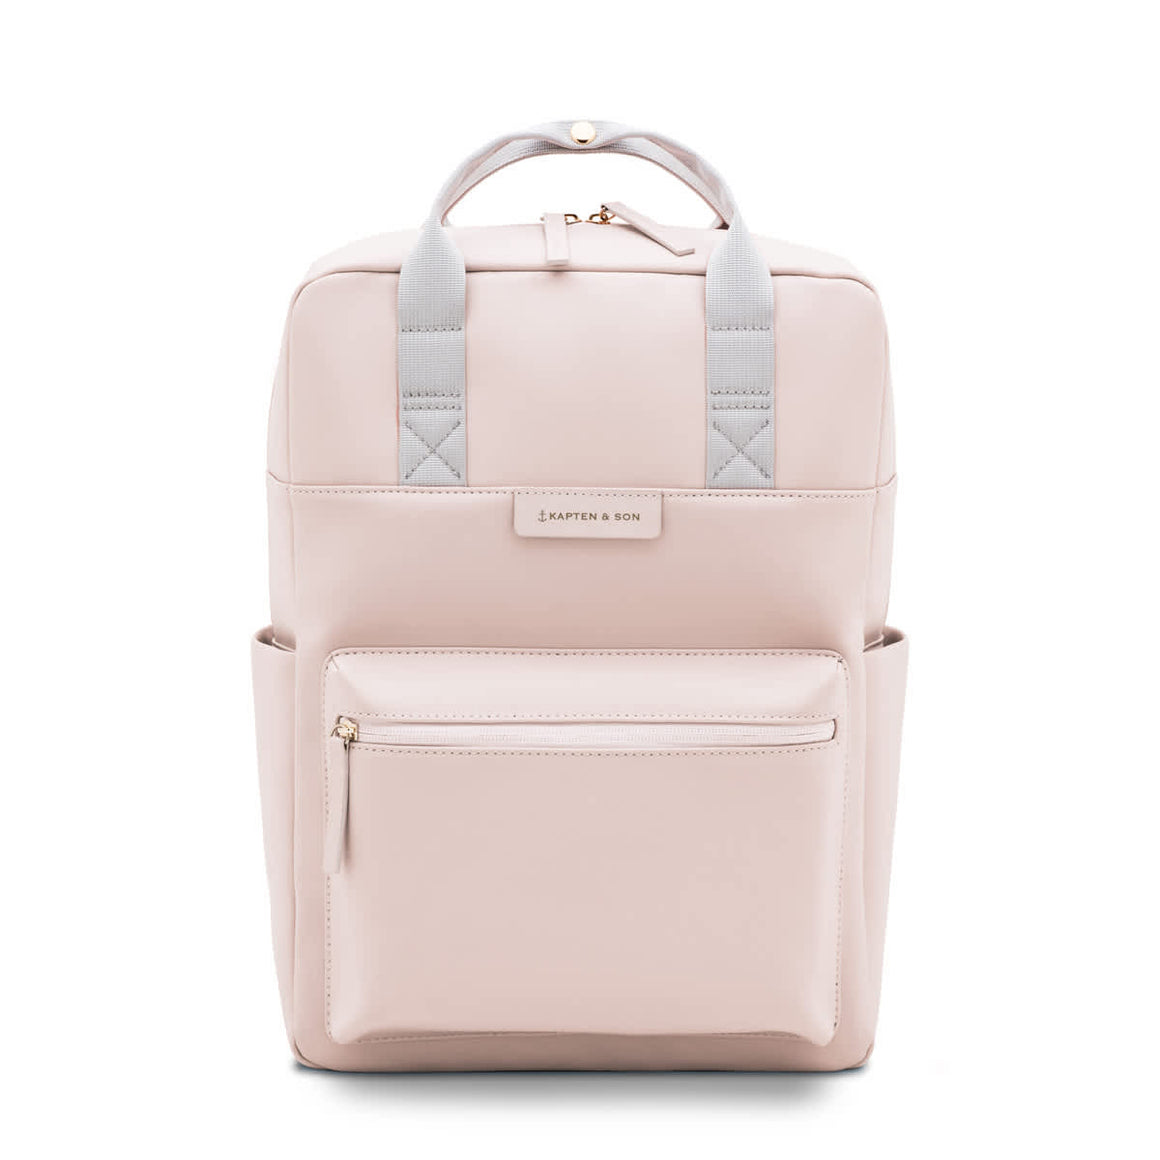 Bergen Backpack for Men and Women in Cherry Blossom